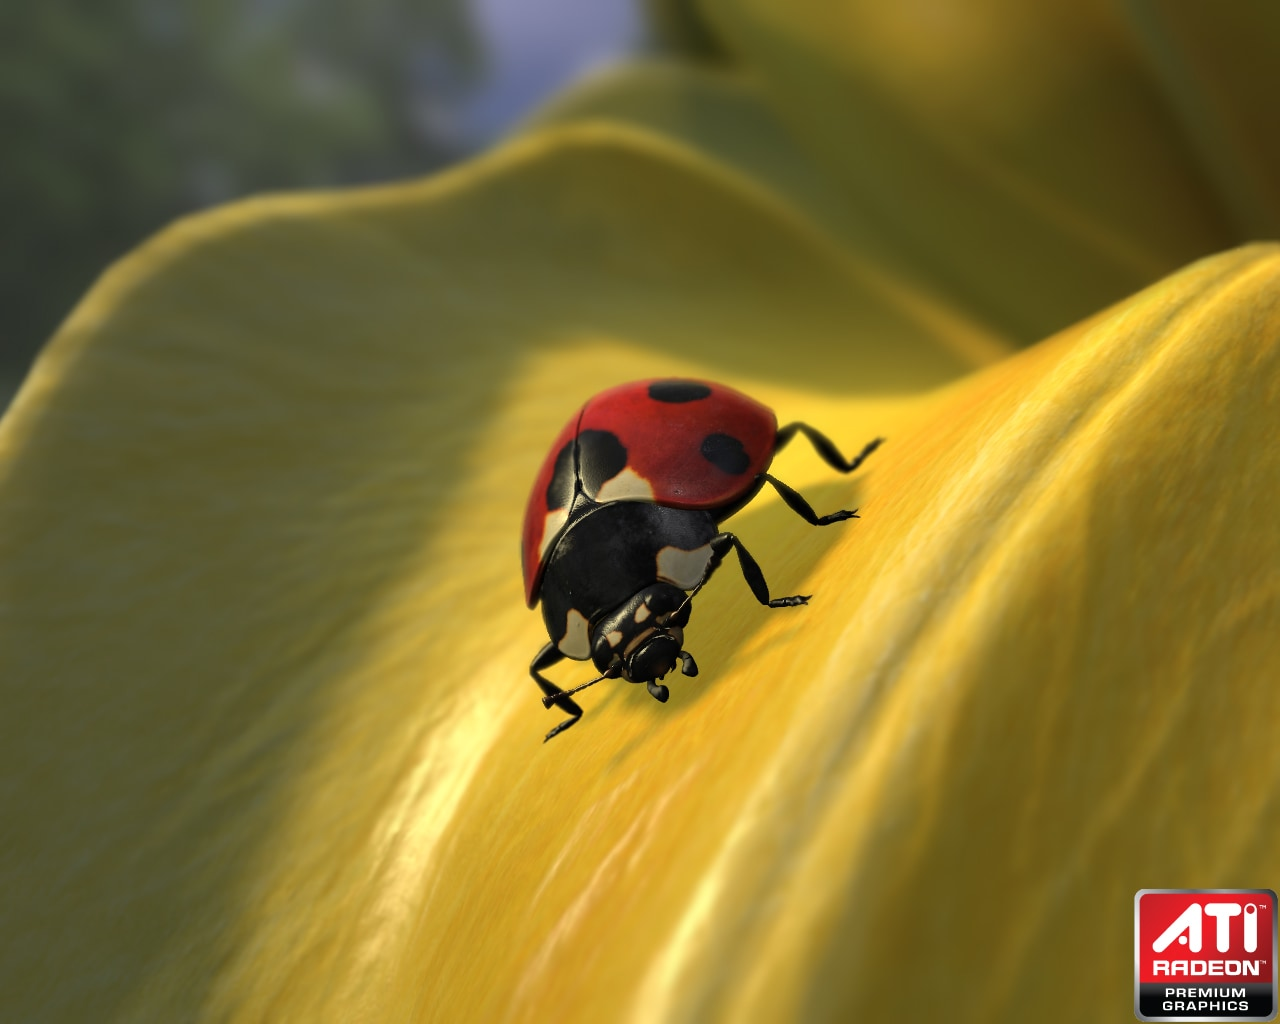 Radeon™ HD 5000 Series Graphics Real-Time Demos - Ladybug demo